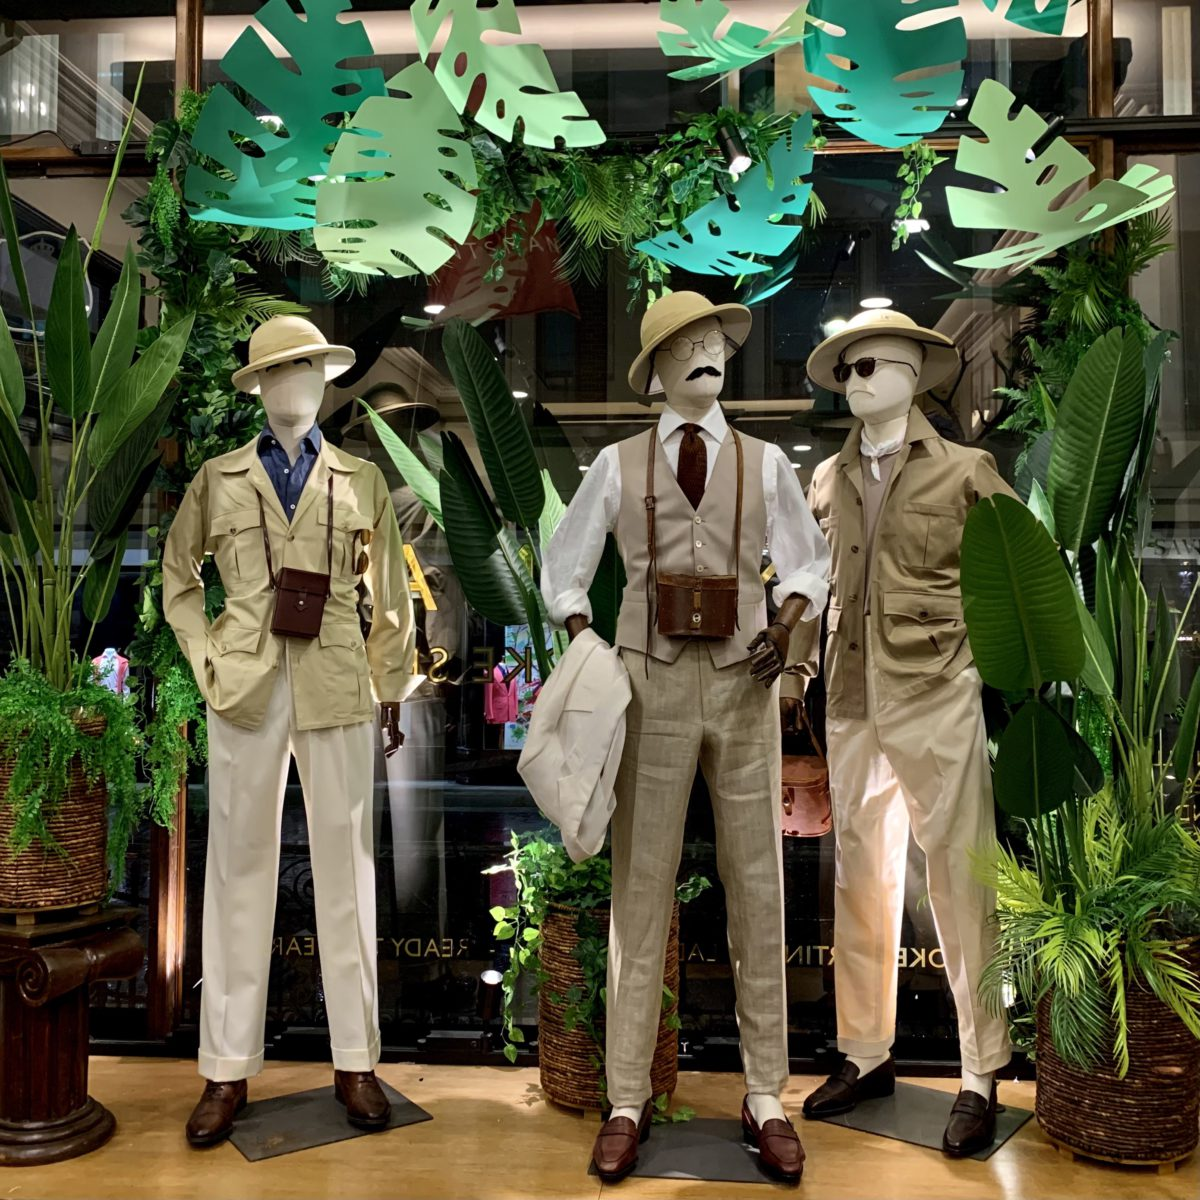 The latest window installation at 11 Savile Row showing off their bespoke shirting service